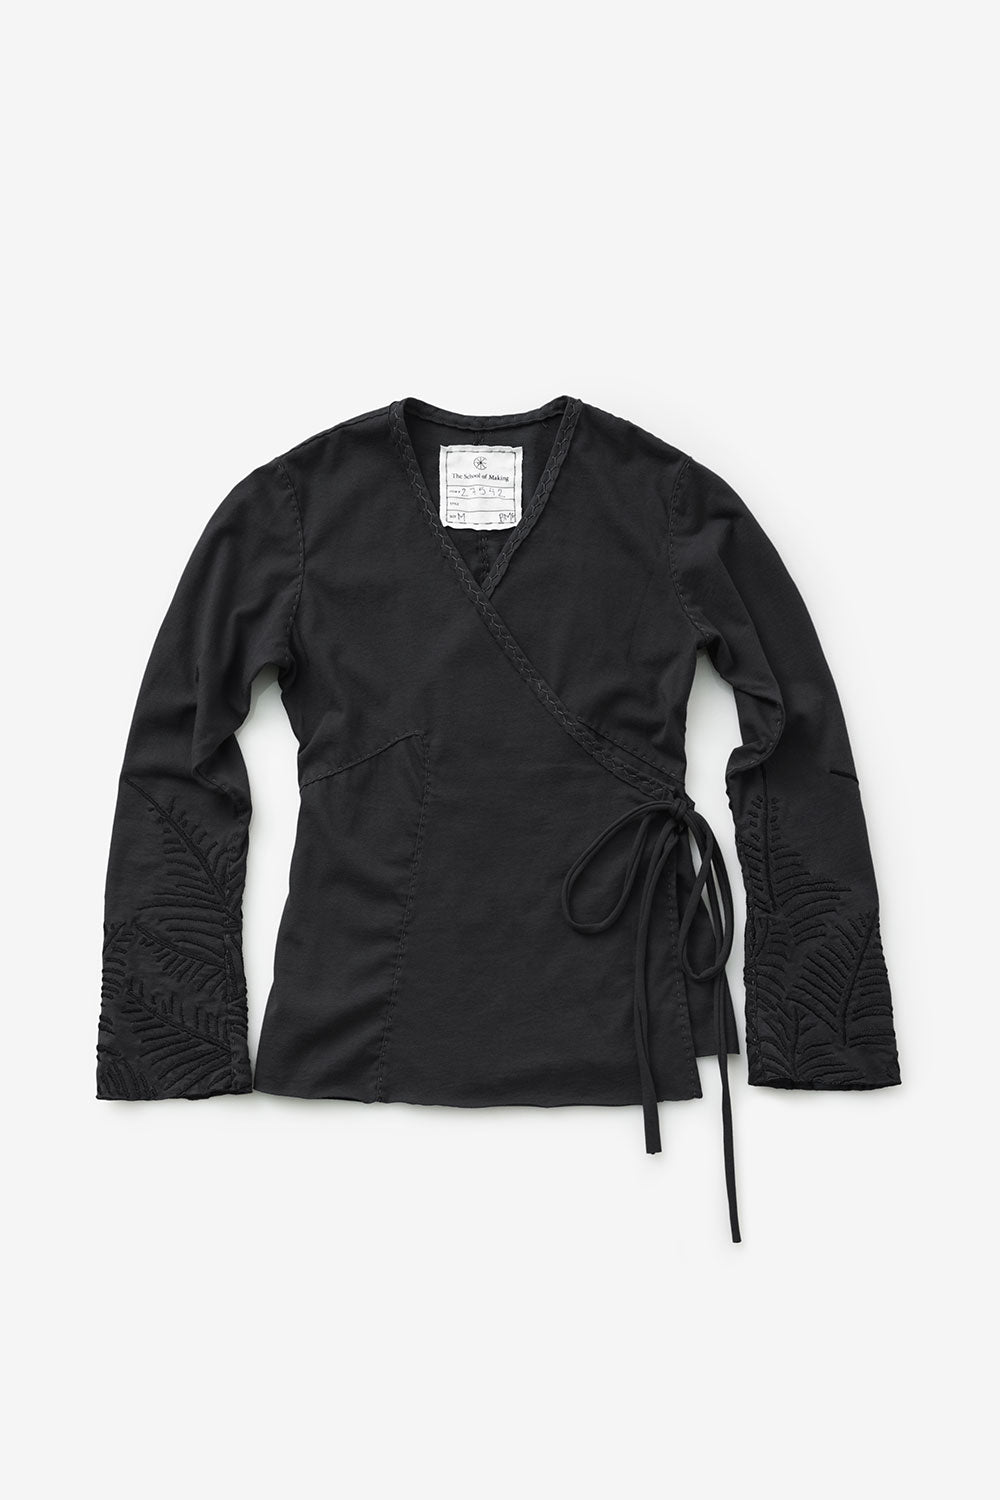 The School of Making DIY Long Sleeves Wrap Top Kit made with Organic Cotton Black